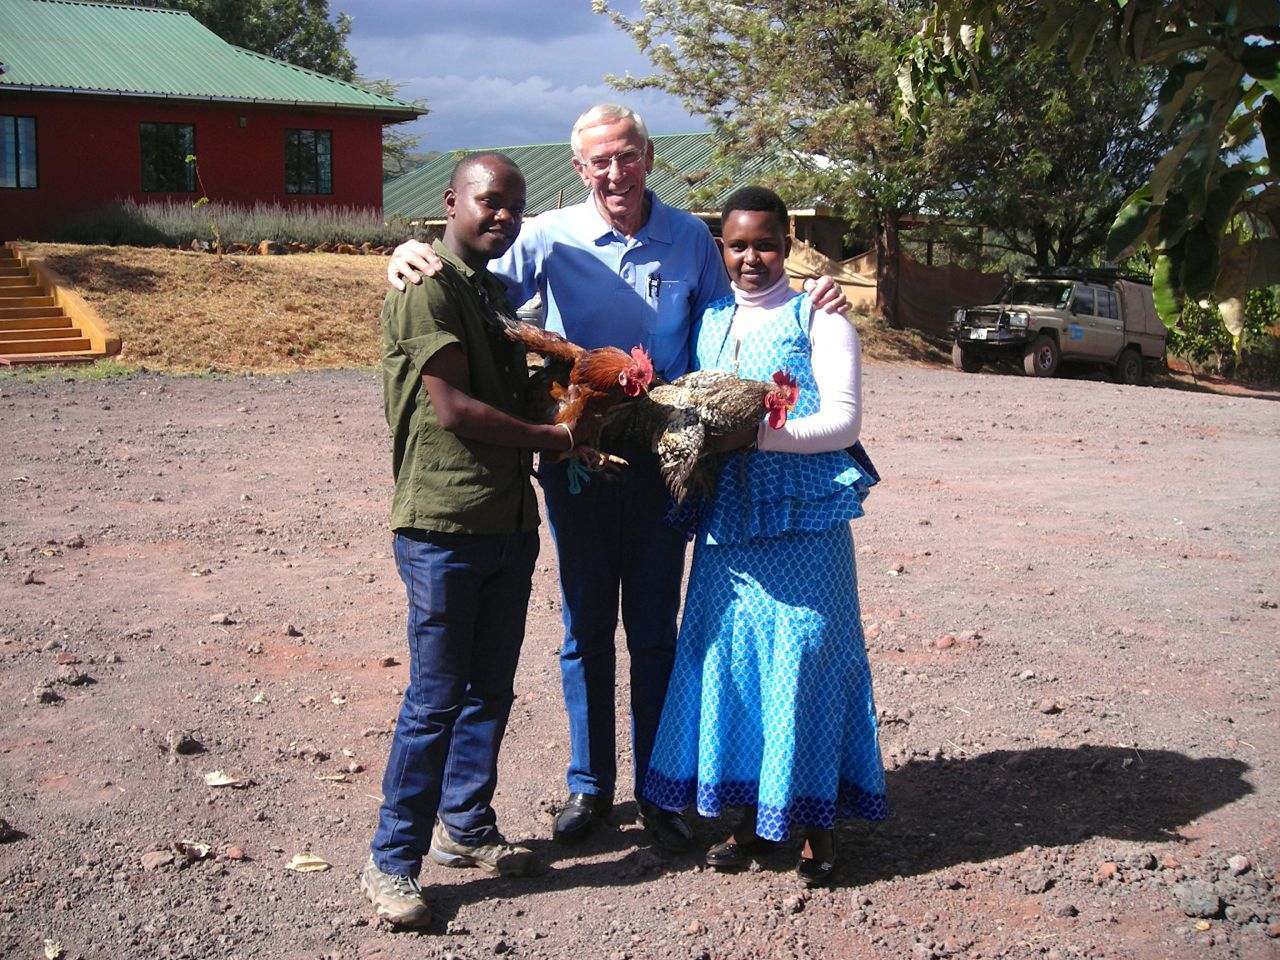 Martina and her husband gift Dr. Duane with two chickens